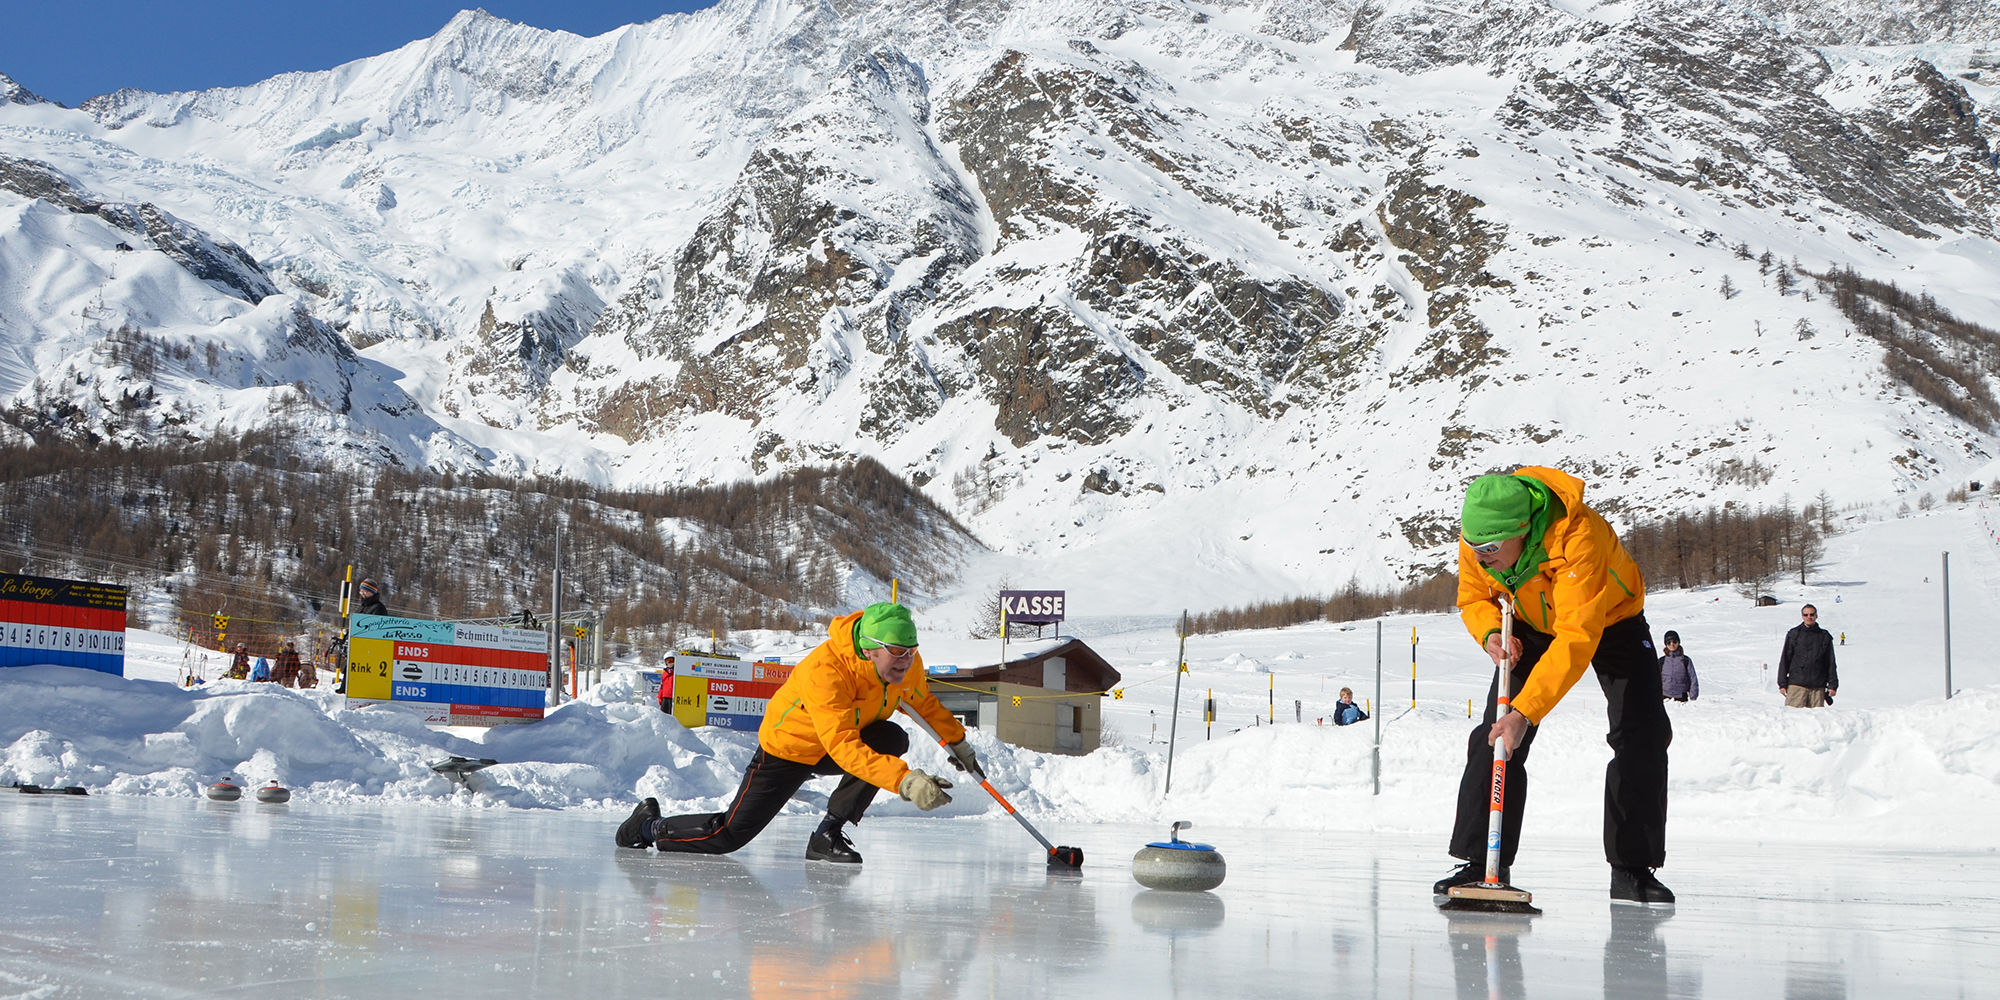 Winter sports in the Free Republic of Holidays Saas-Fee